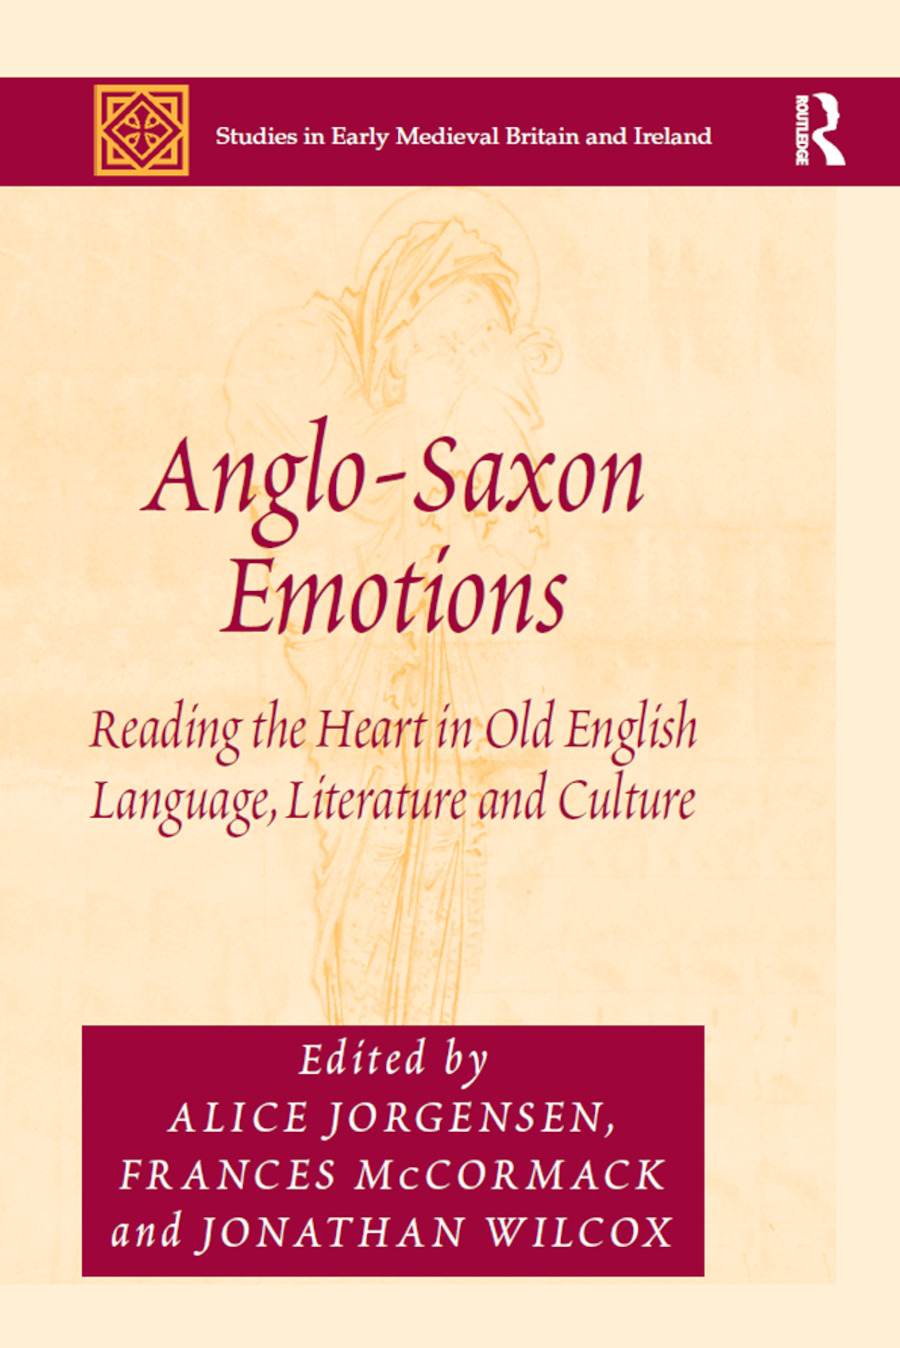 Anglo-Saxon Emotions